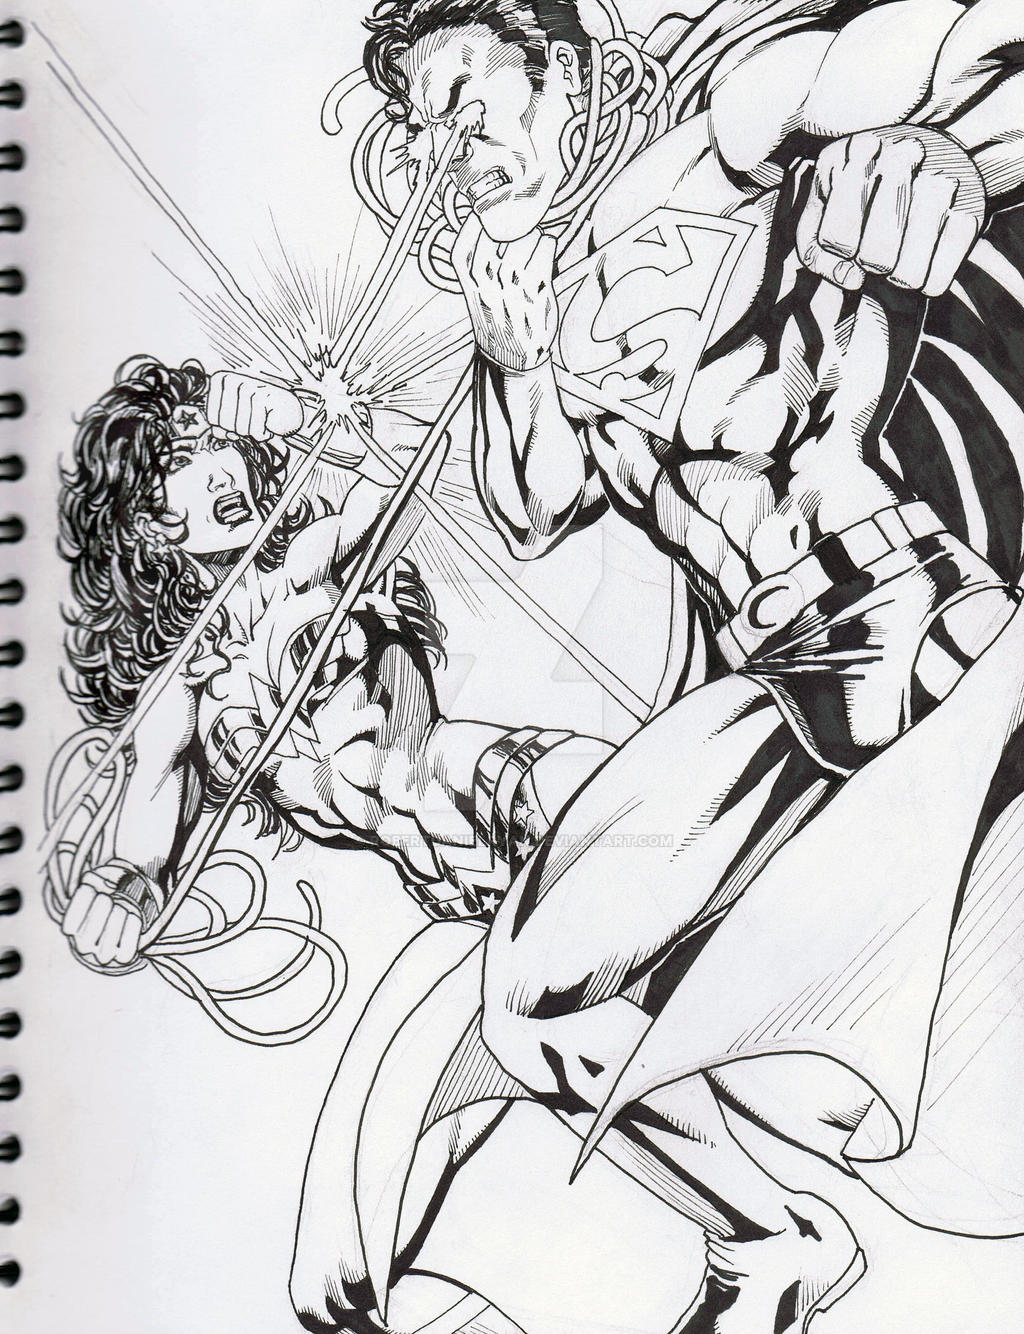 Wonder Woman vs. Superman B by RobertDanielRyan